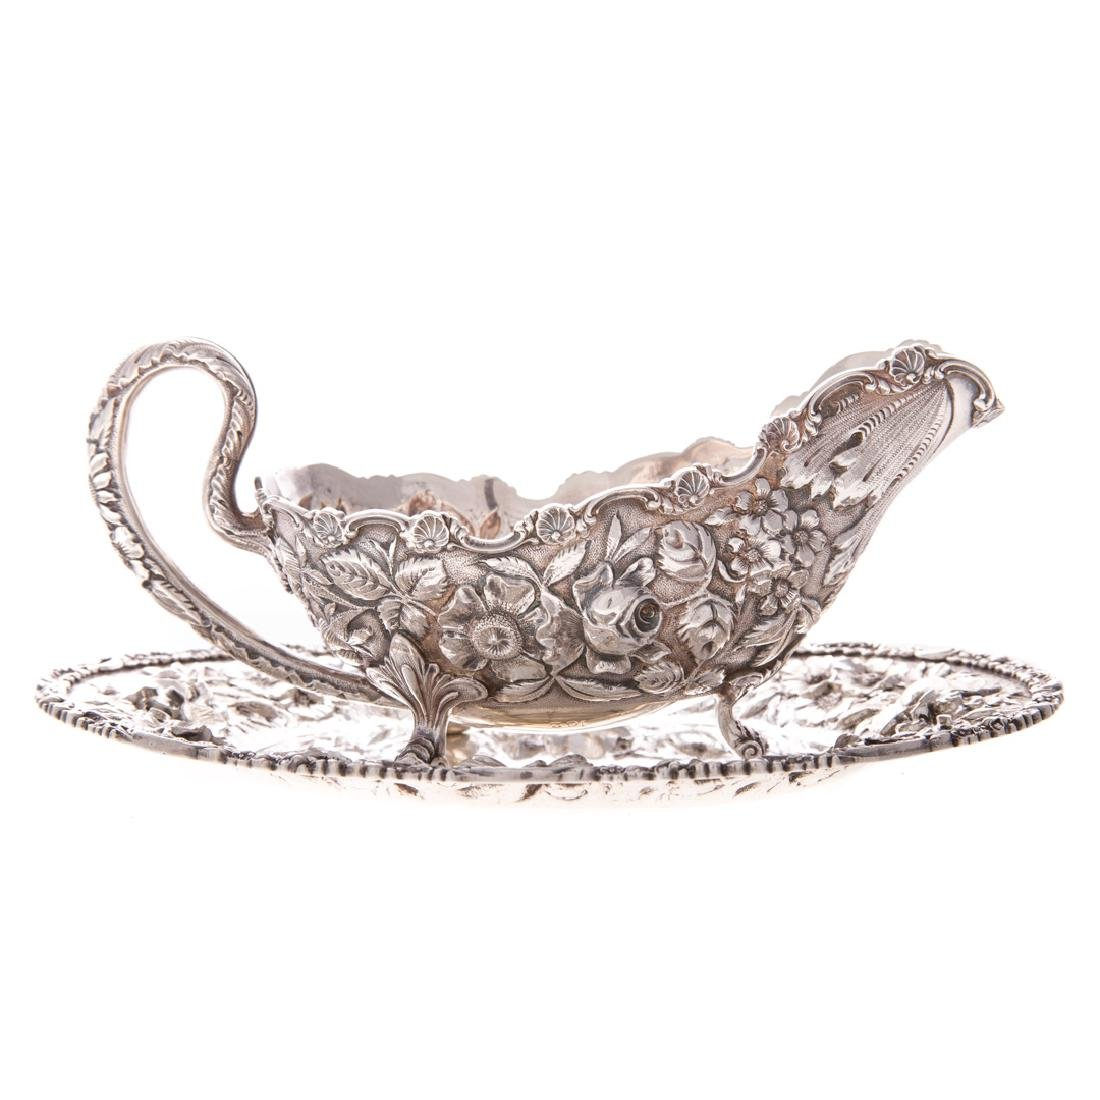 Stieff repousse sterling gravy boat & under tray